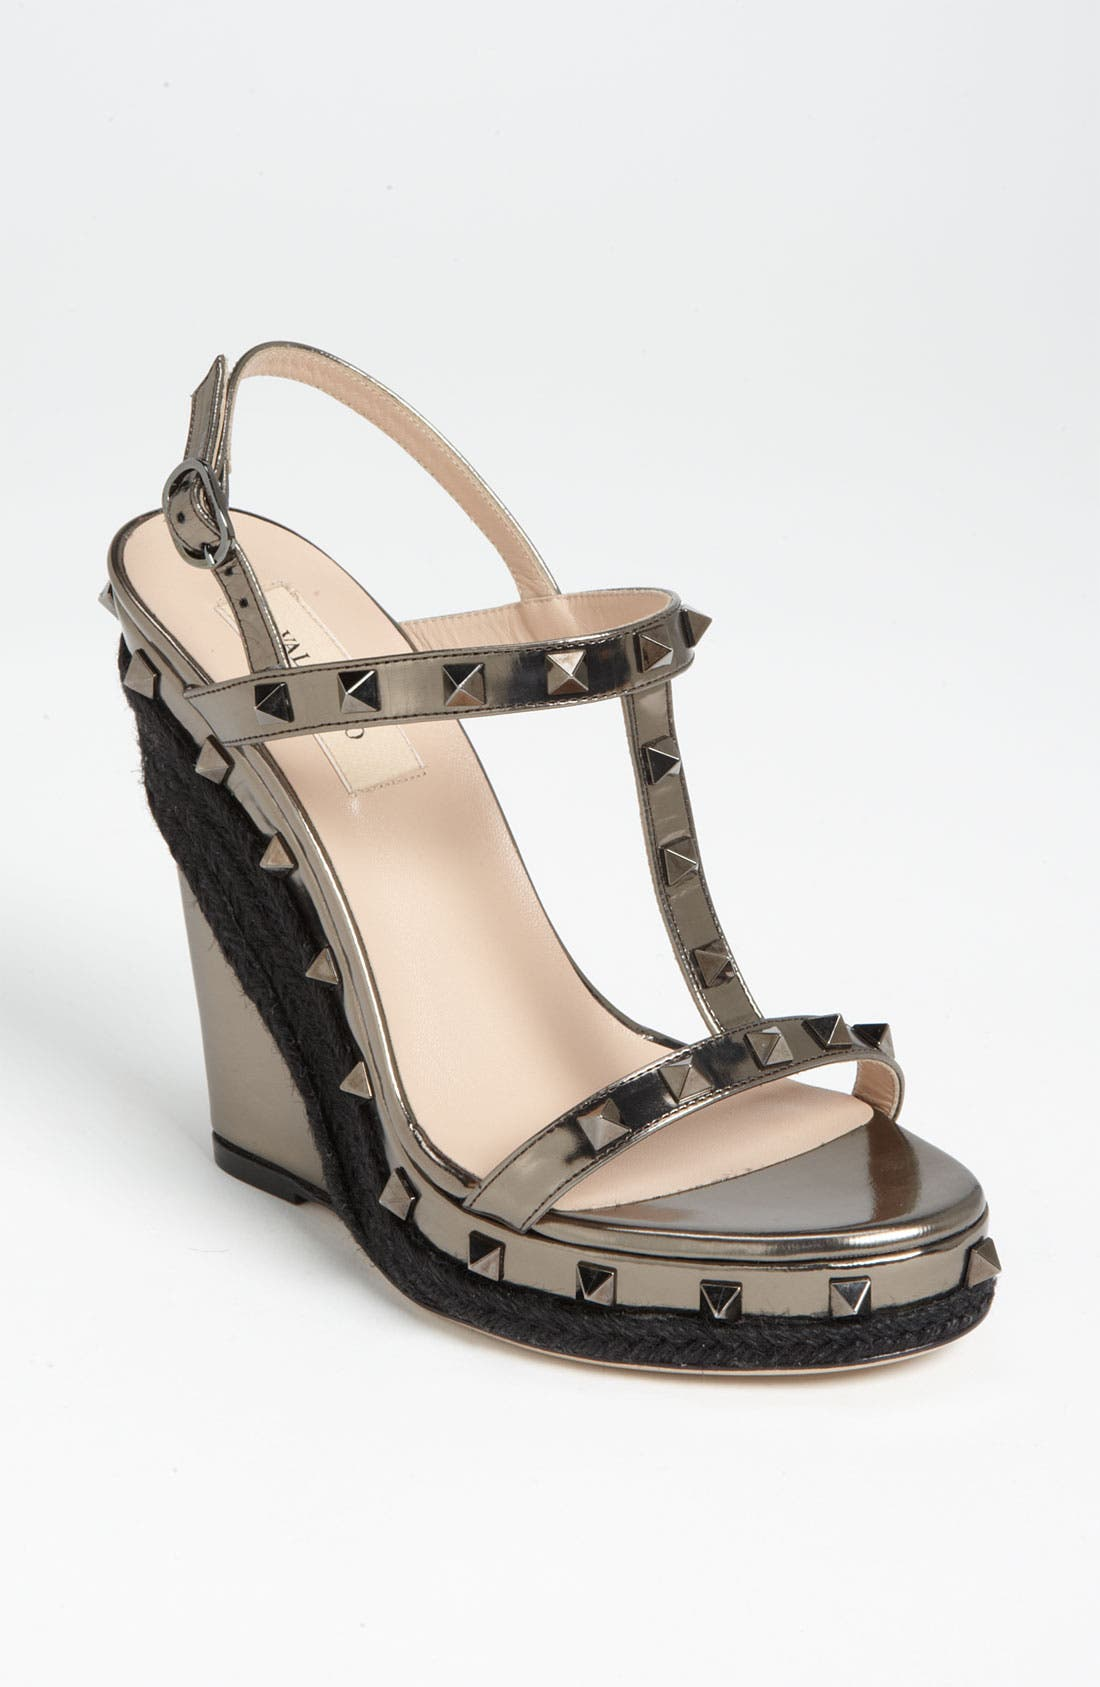 Alternate Image 1 Selected - Valentino 'Rockstud' Wedge Sandal